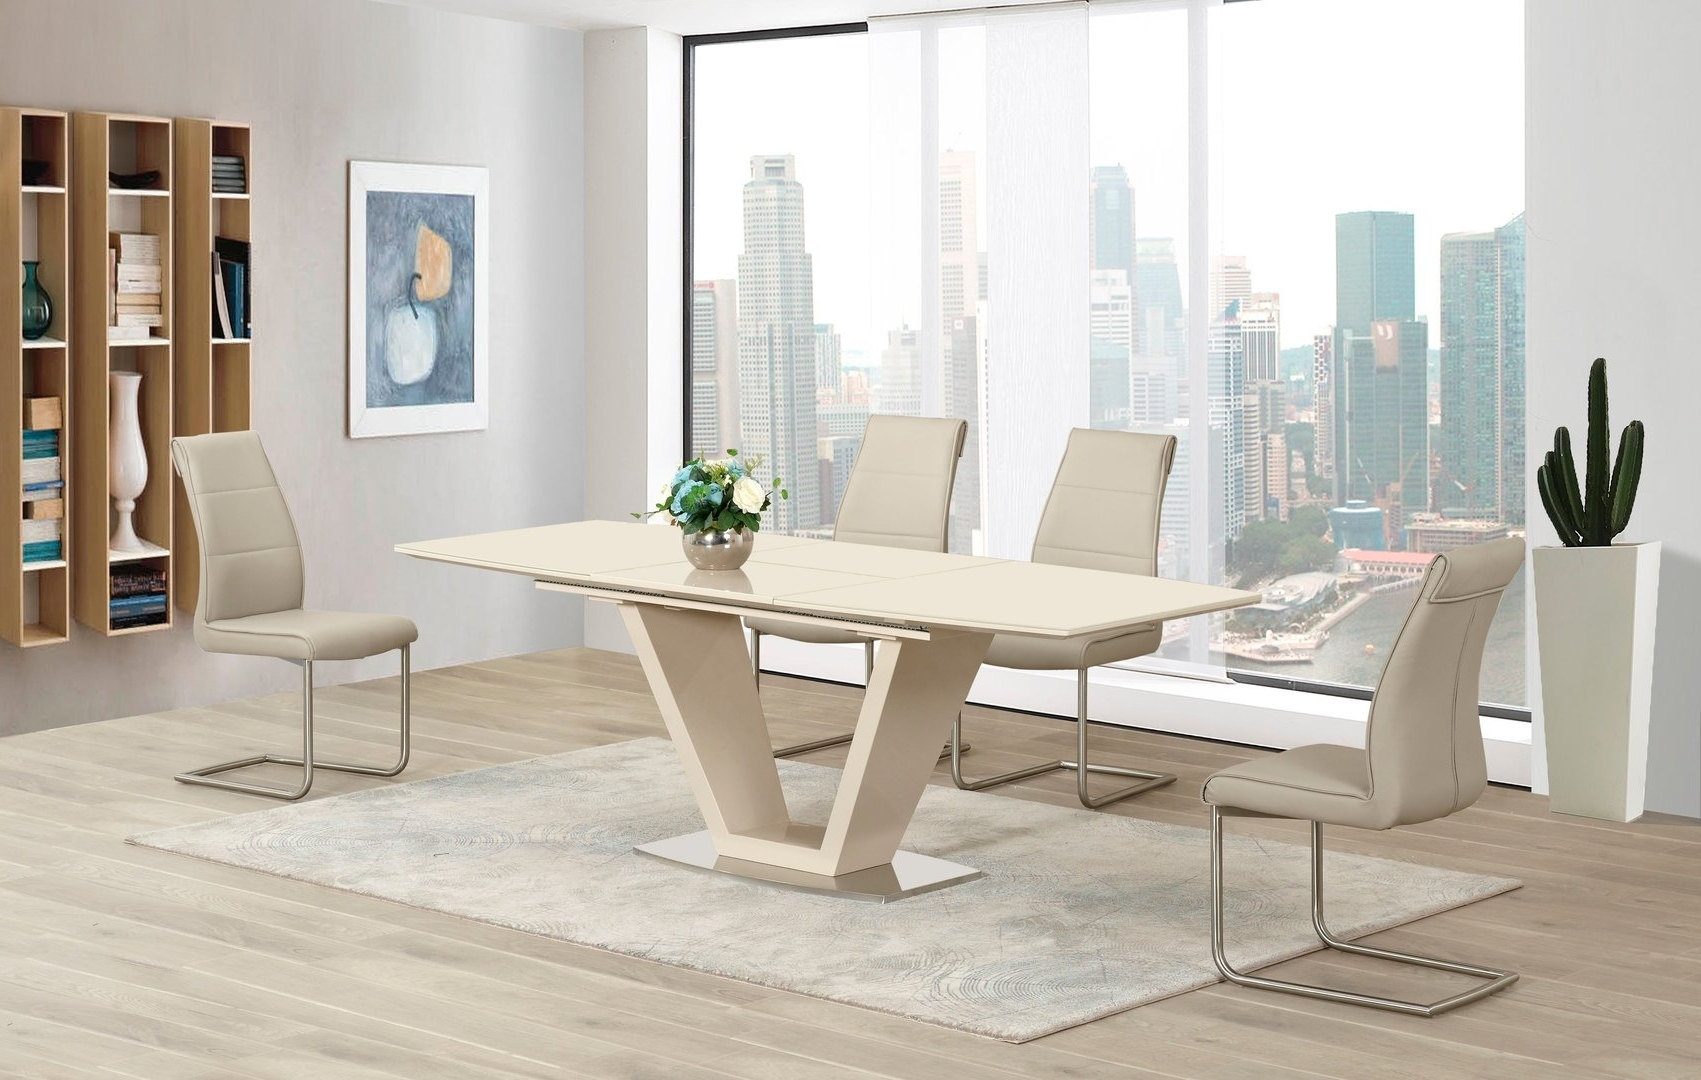 2018 Cream Extending Glass High Gloss Dining Table And 6 Taupe Chairs with regard to Cream High Gloss Dining Tables